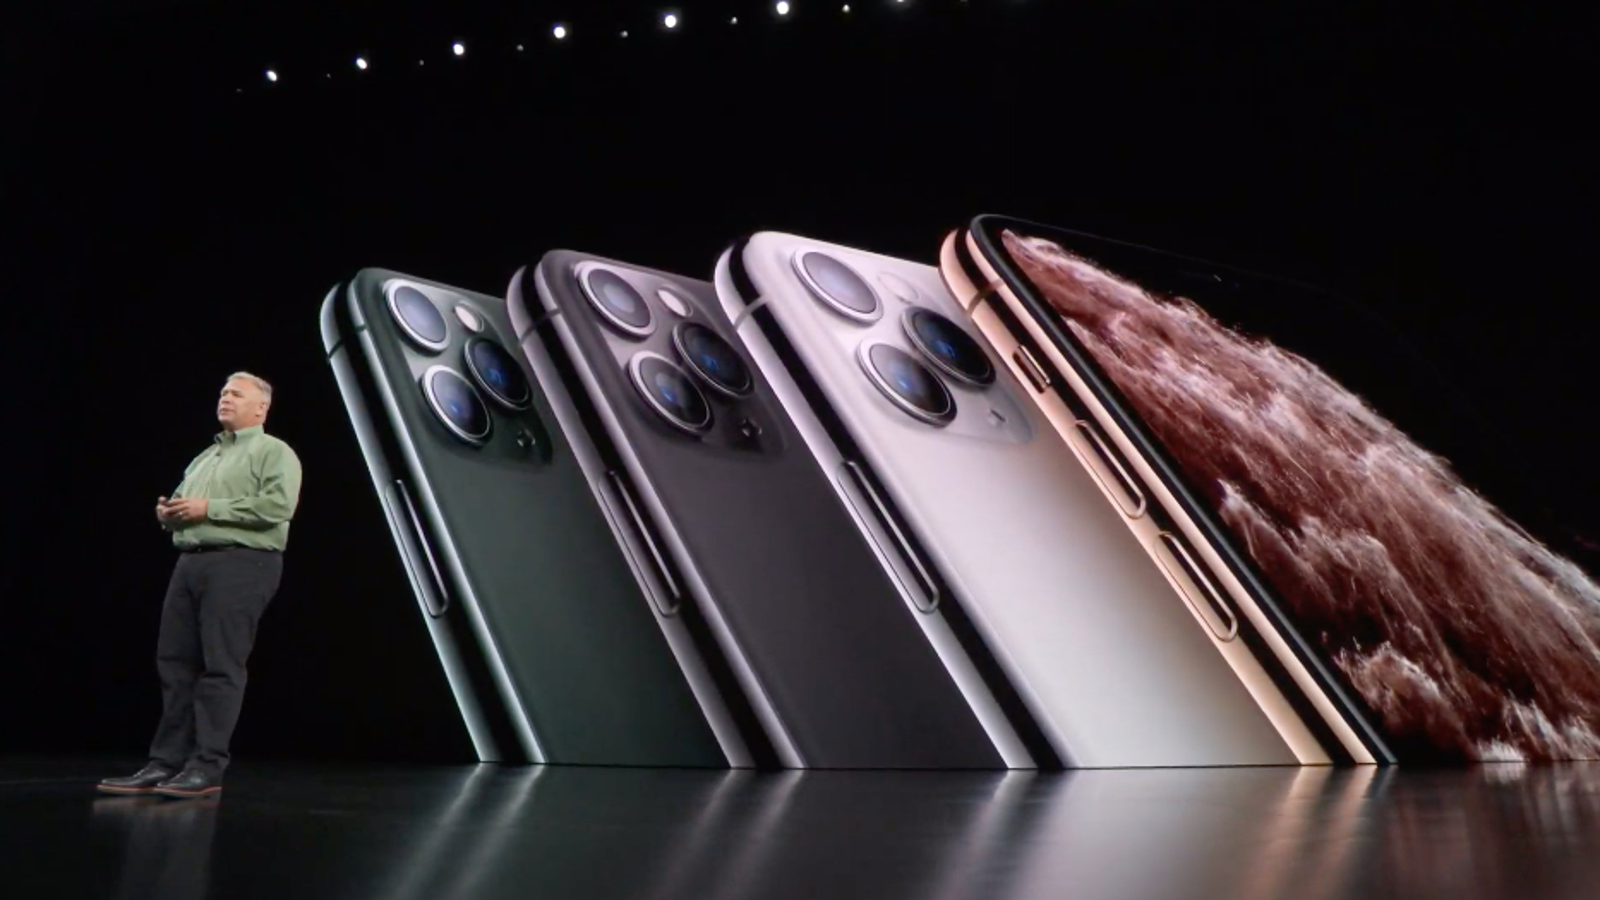 iPhone 11 Pro: What's New About Apple's Super Extra Premium Triple-Camera Phones